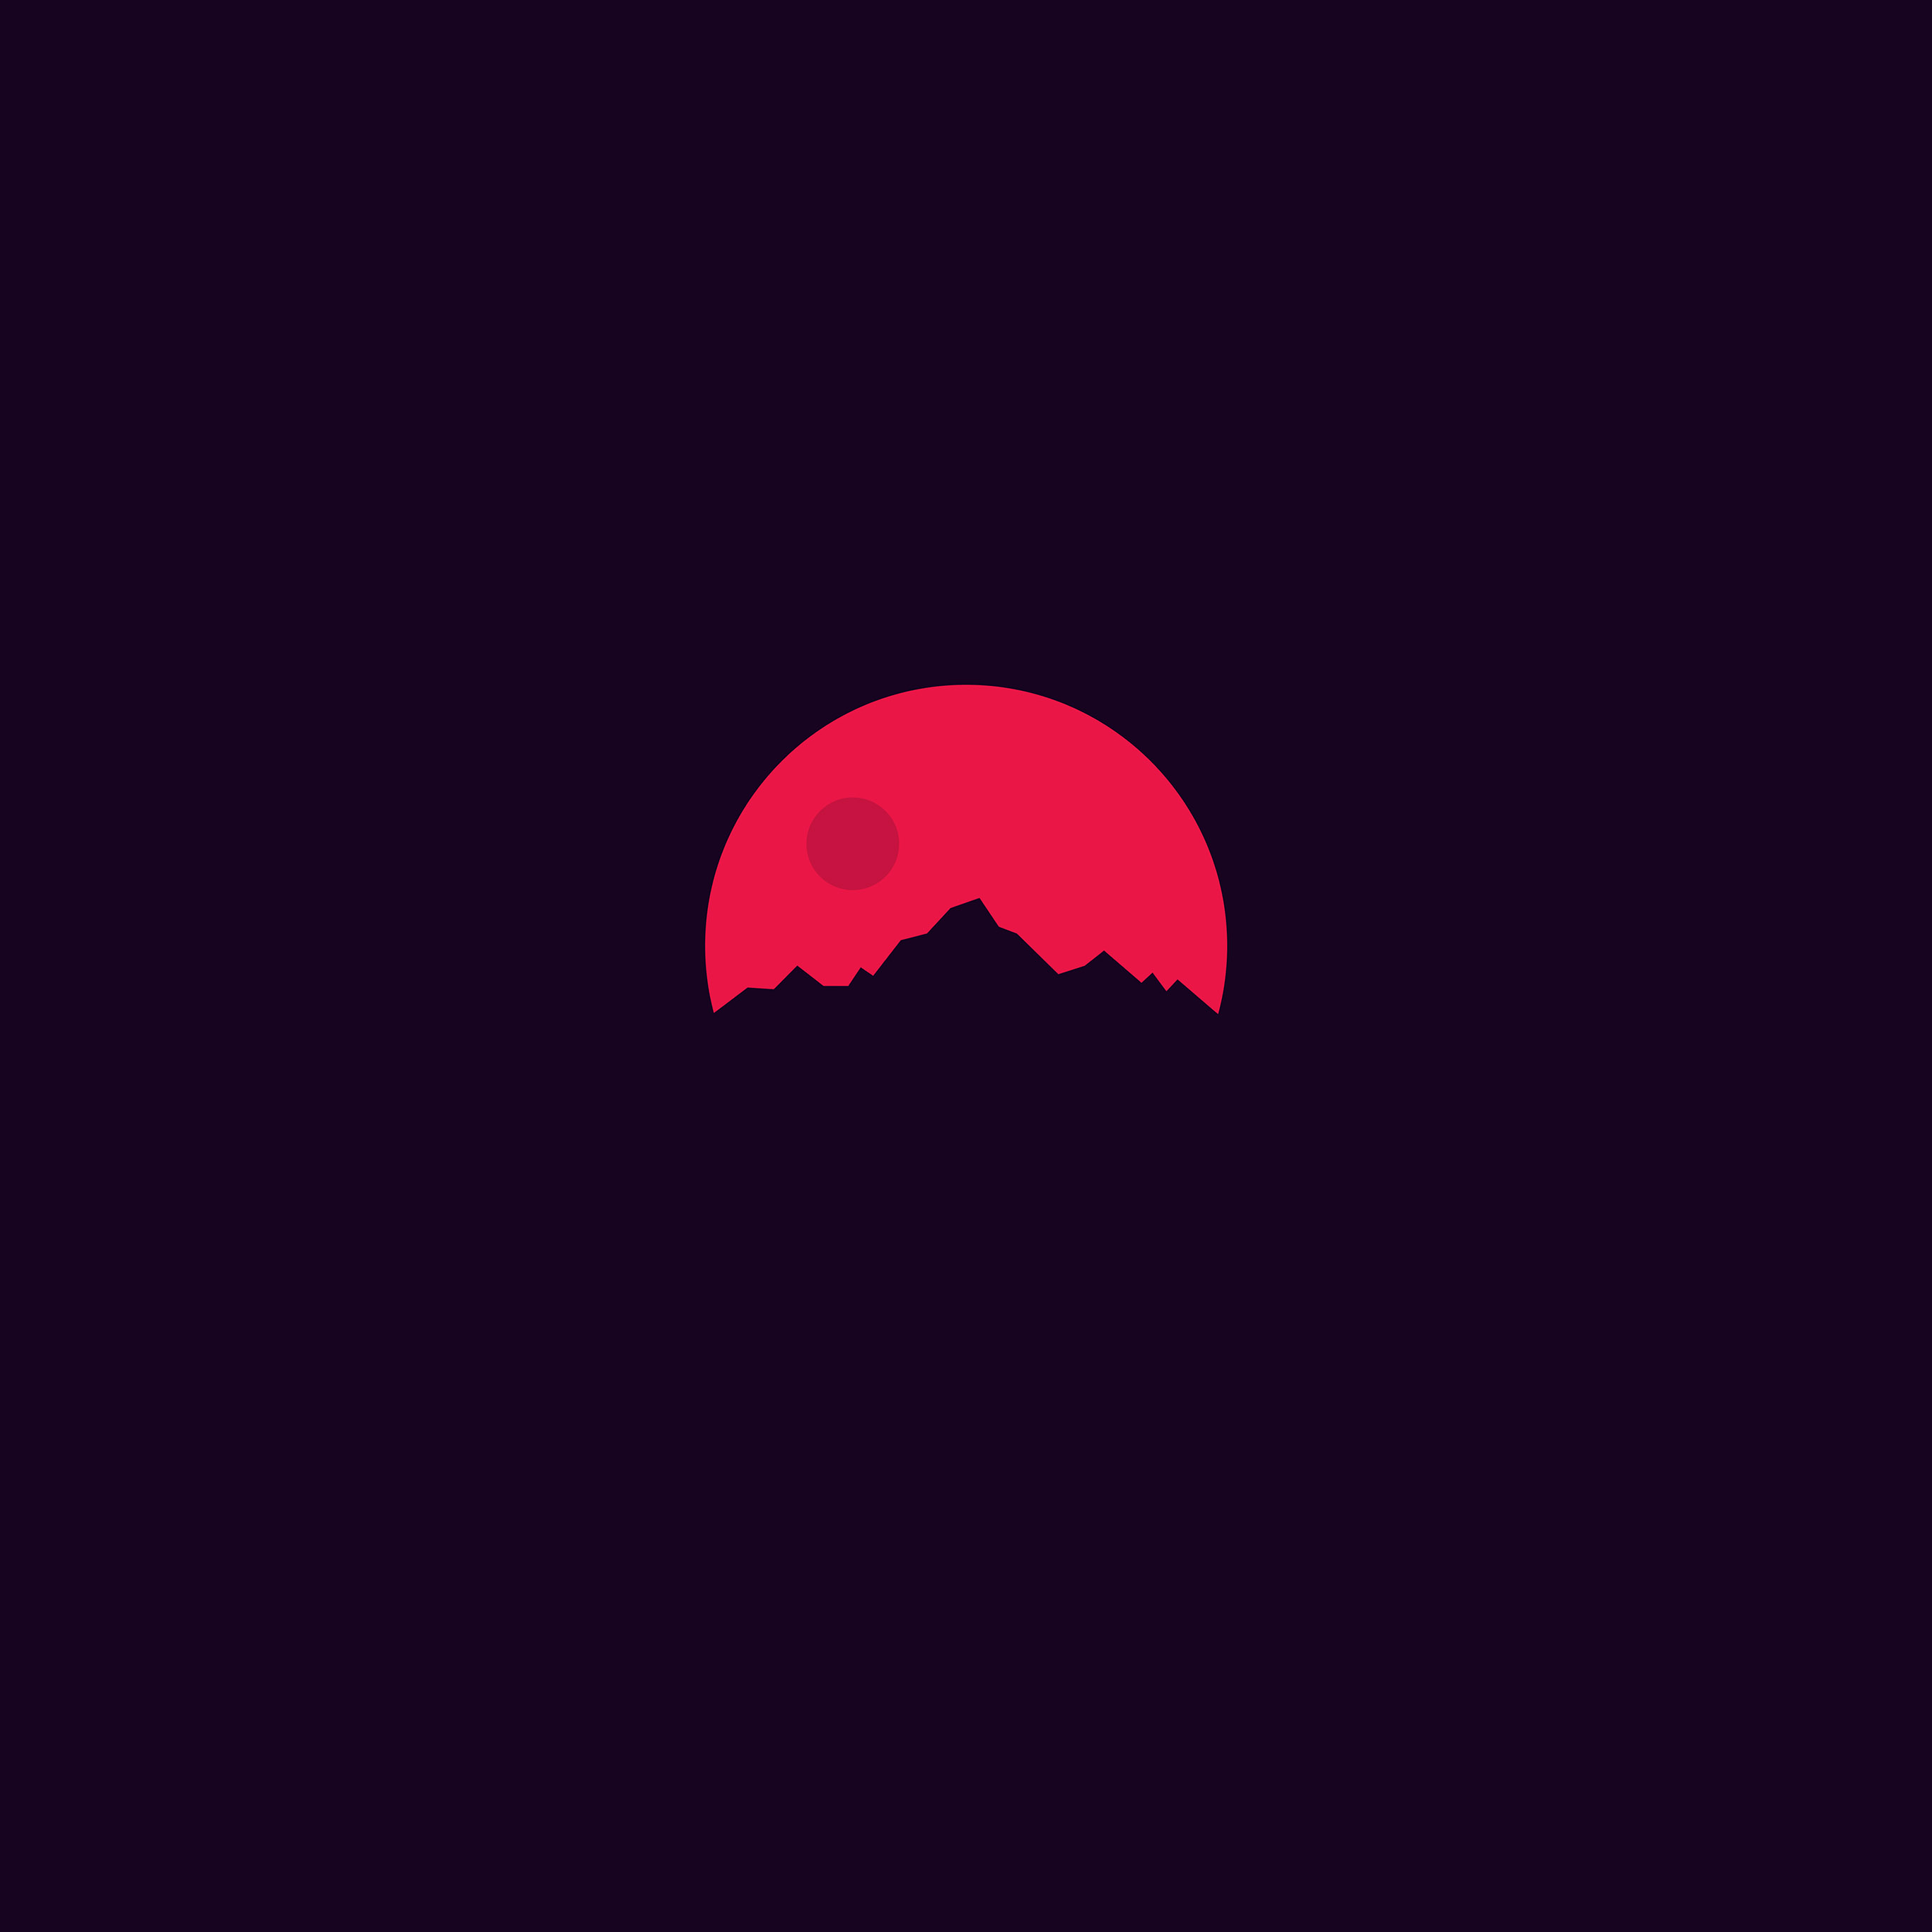 Ar12 Minimal Sunset Art Illustration Wallpaper